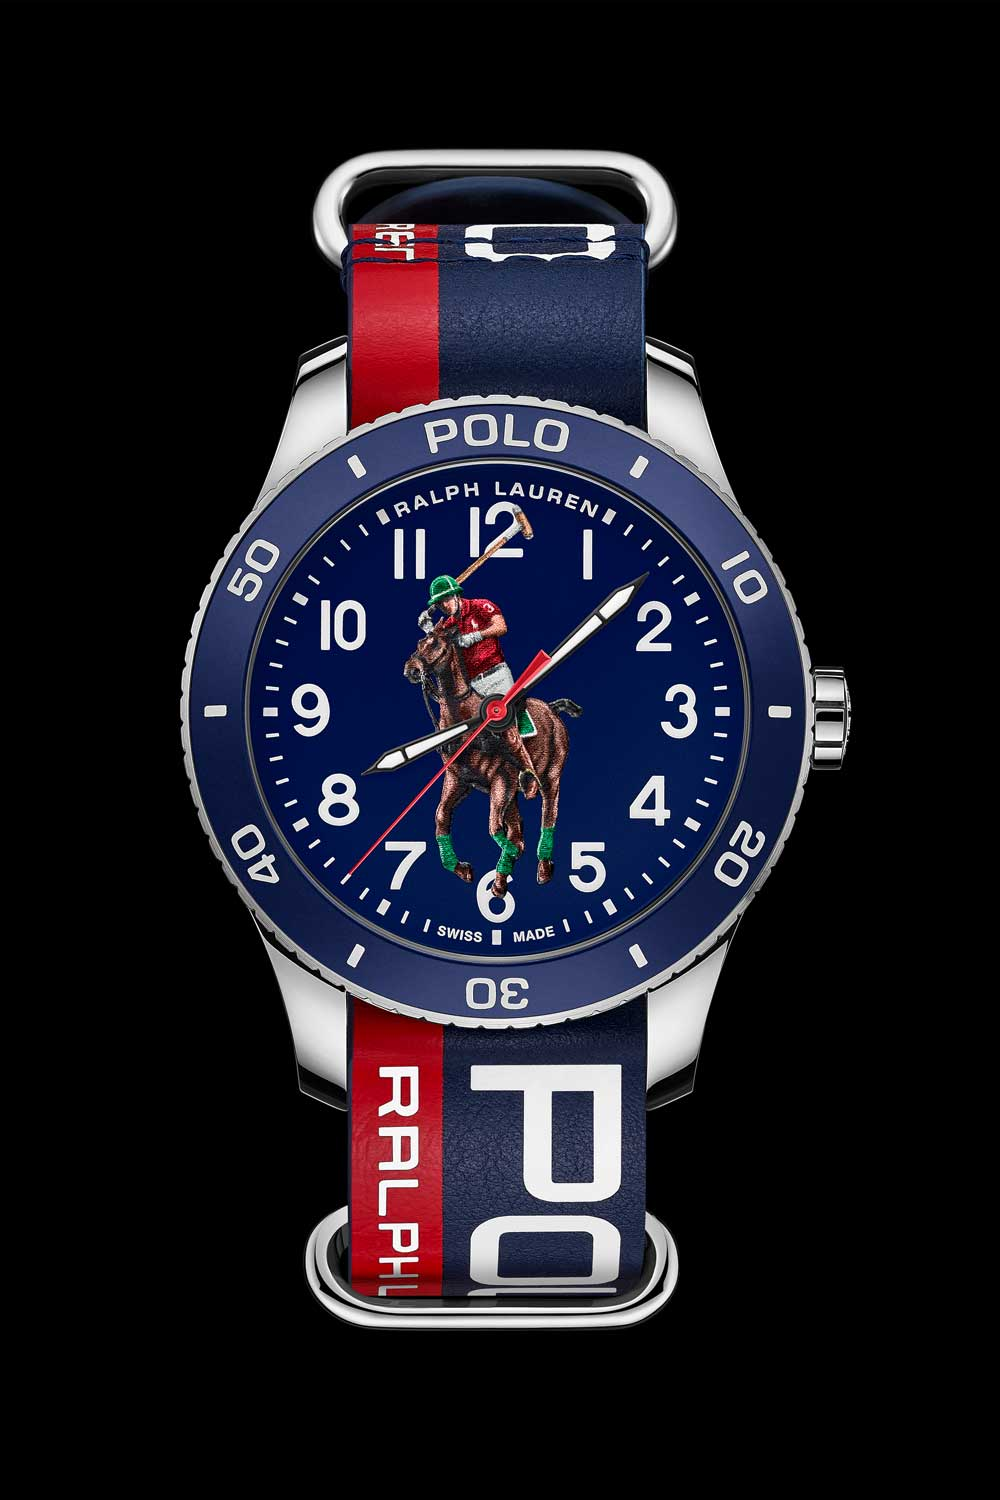 Ralph Lauren Polo Watch Collection